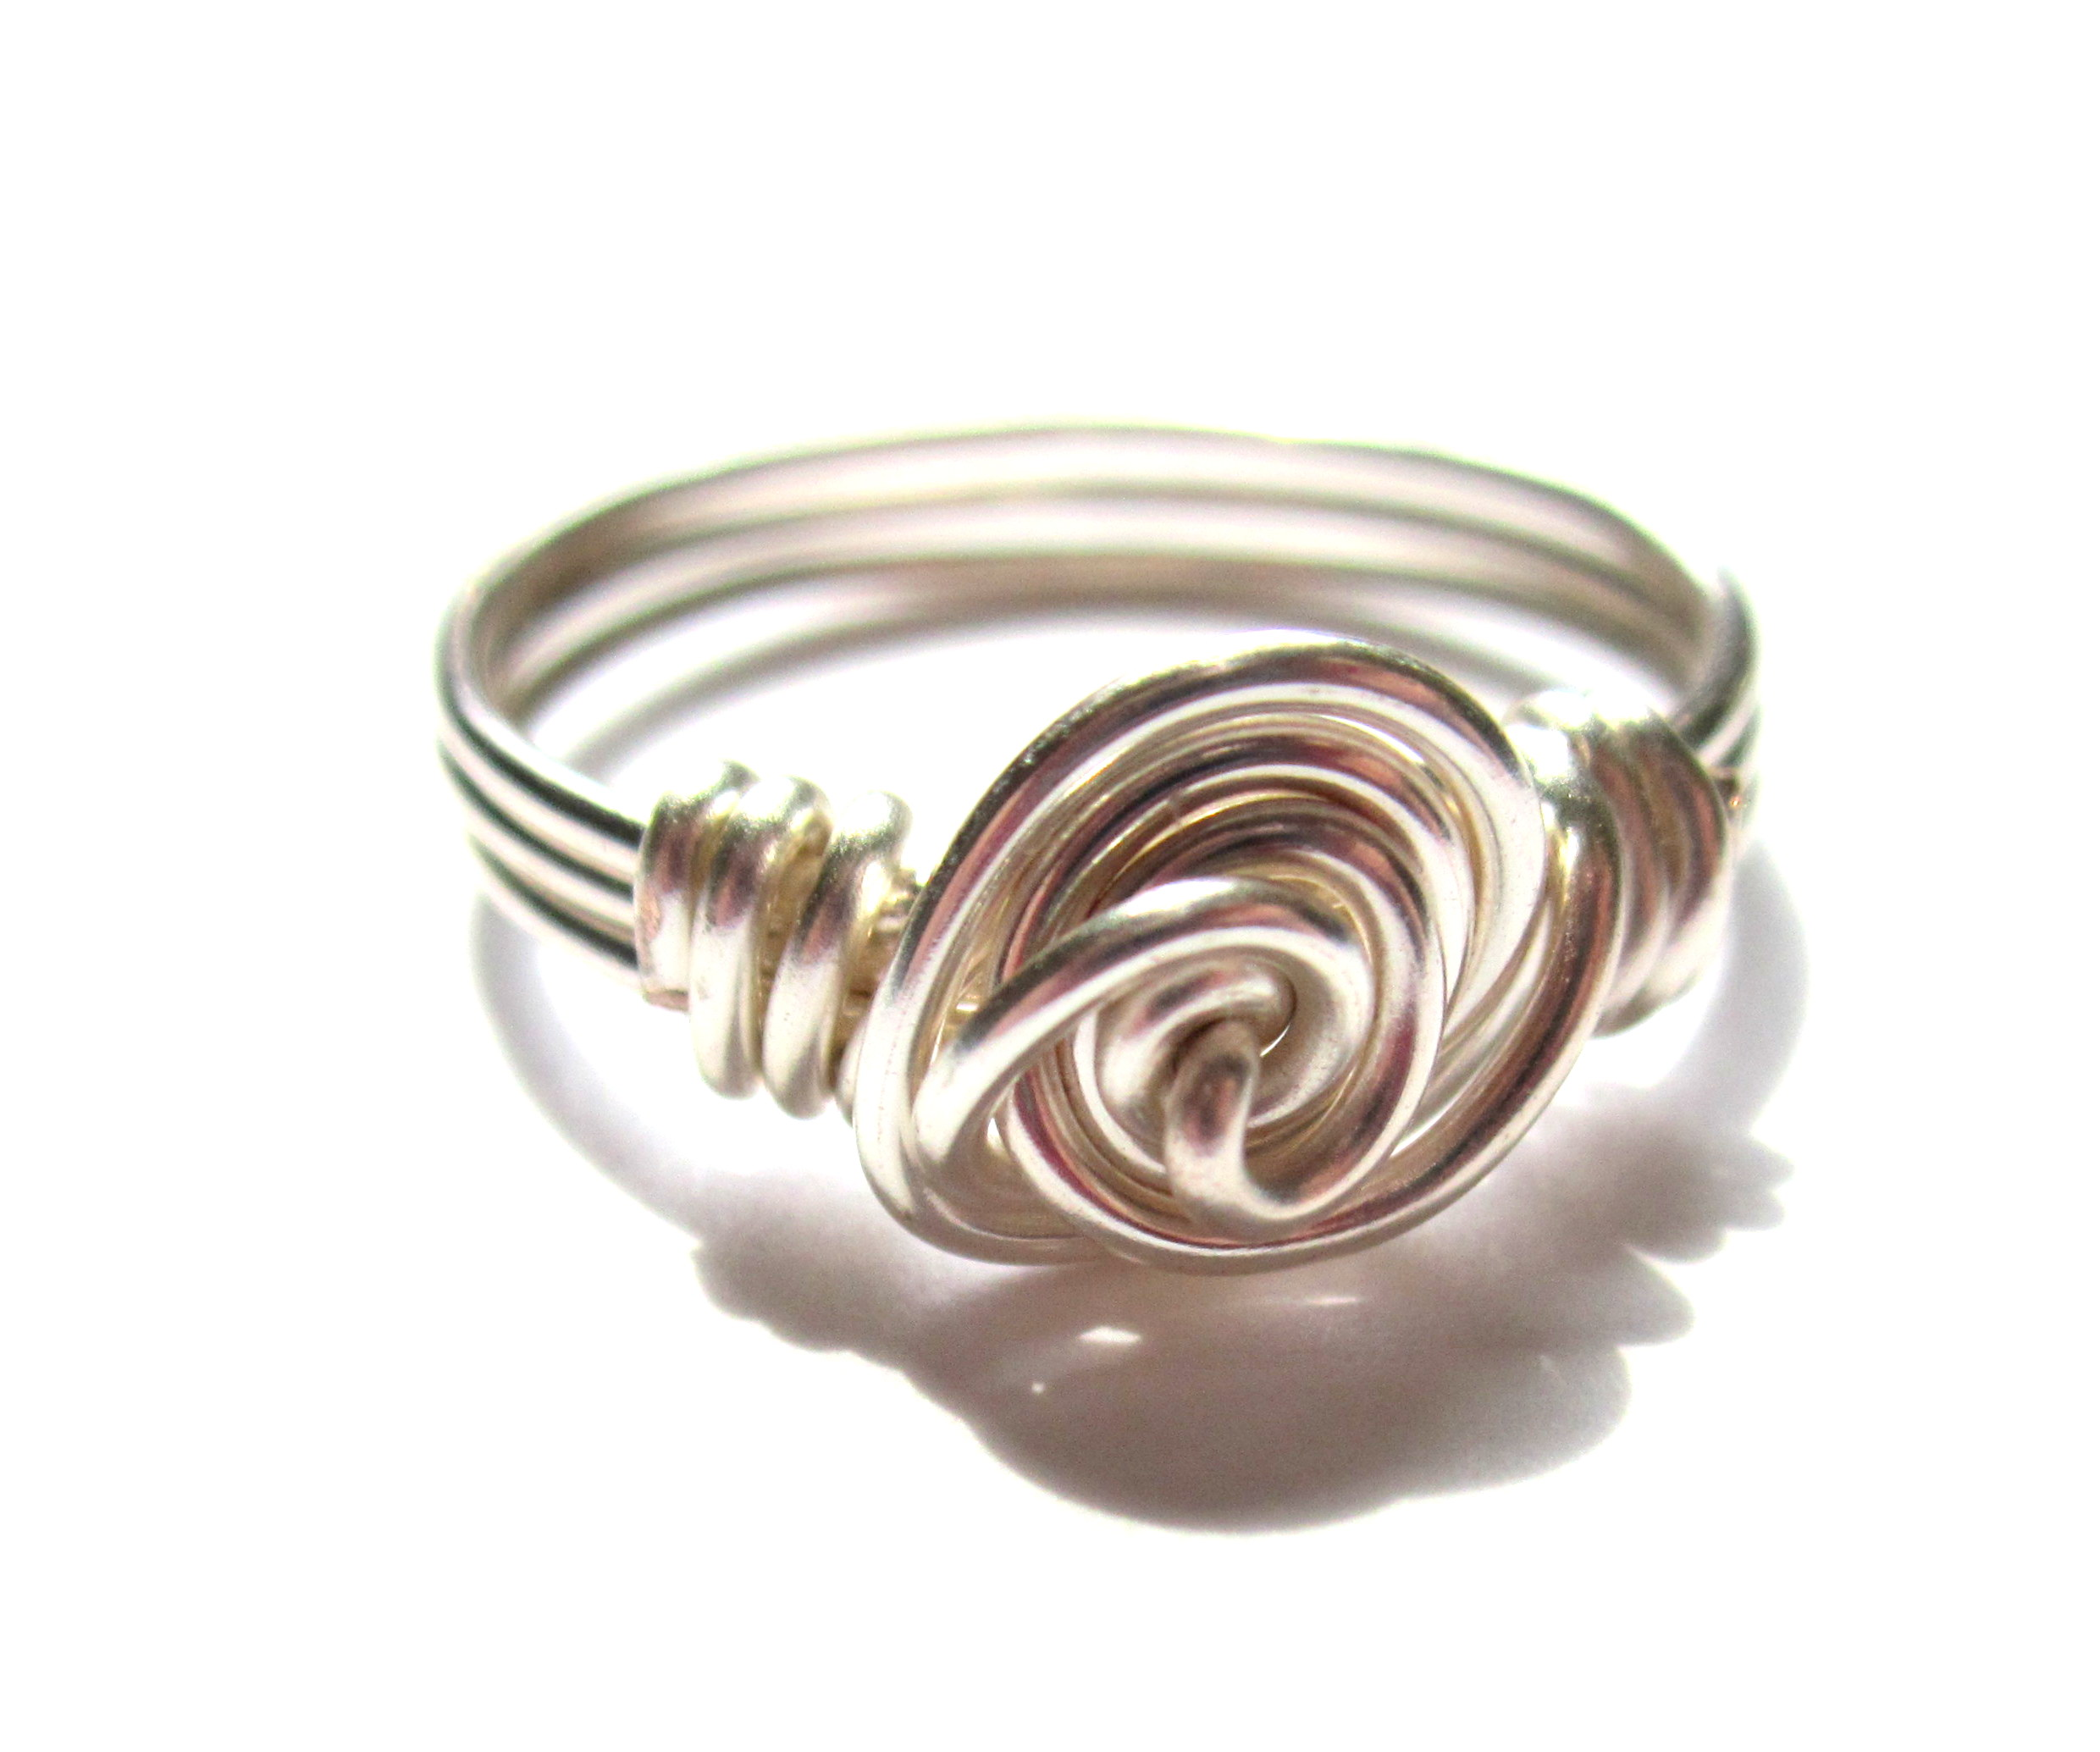 Aluminum Wire Jewelry Roses Center 1951 Ford Pickupf1f2f3 V8 Cowl Loom Wiring Harness Wrapped Rose Ring Tutorial Emerging Creatively Tutorials Rh Kimberliekohler Com Craft